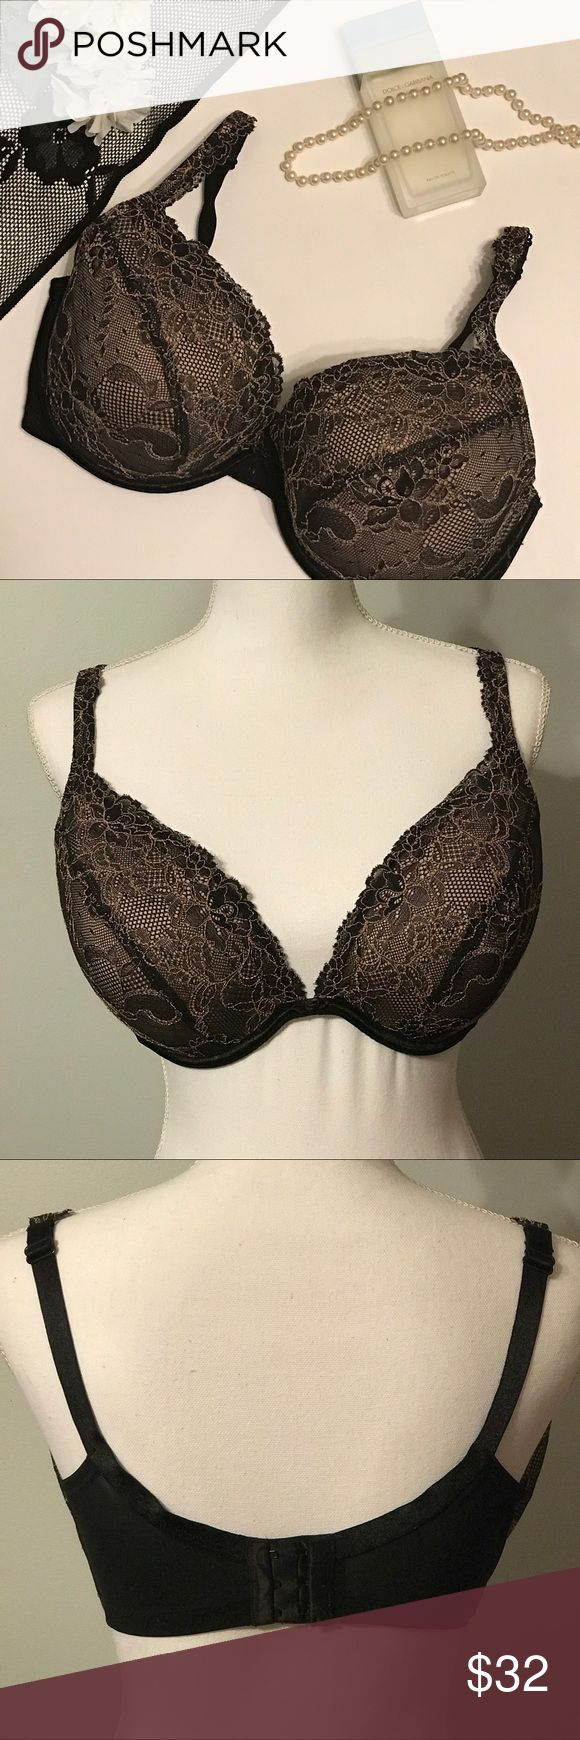 Cacique Lane Bryant lace plunge push up bra Pretty black and cream lace cacique bra. Has adjustable straps and mesh back with 3 hook closure. Removable air pads for adjustable push up. Popular type that has been discontinued, hard to find! Great condition. Size 38DDD. Cacique Intimates & Sleepwear Bras